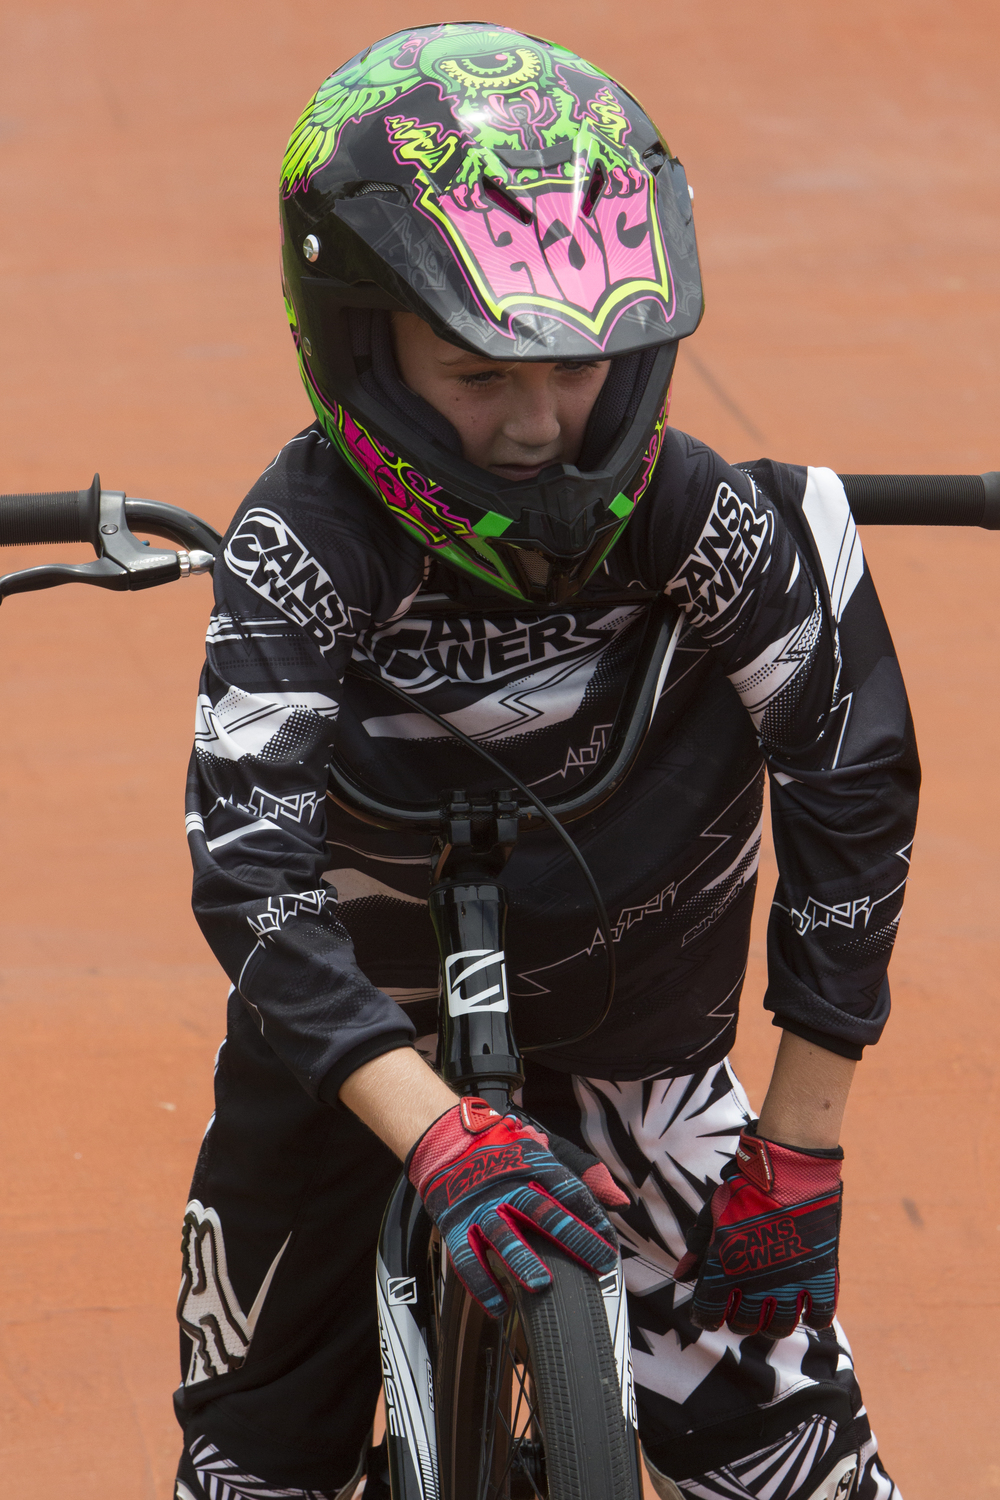 Chase Polley, 10, of Naples, catches his breath during BMX camp at the Golden Gate Wheels skate and BMX park on July 12, 2016.